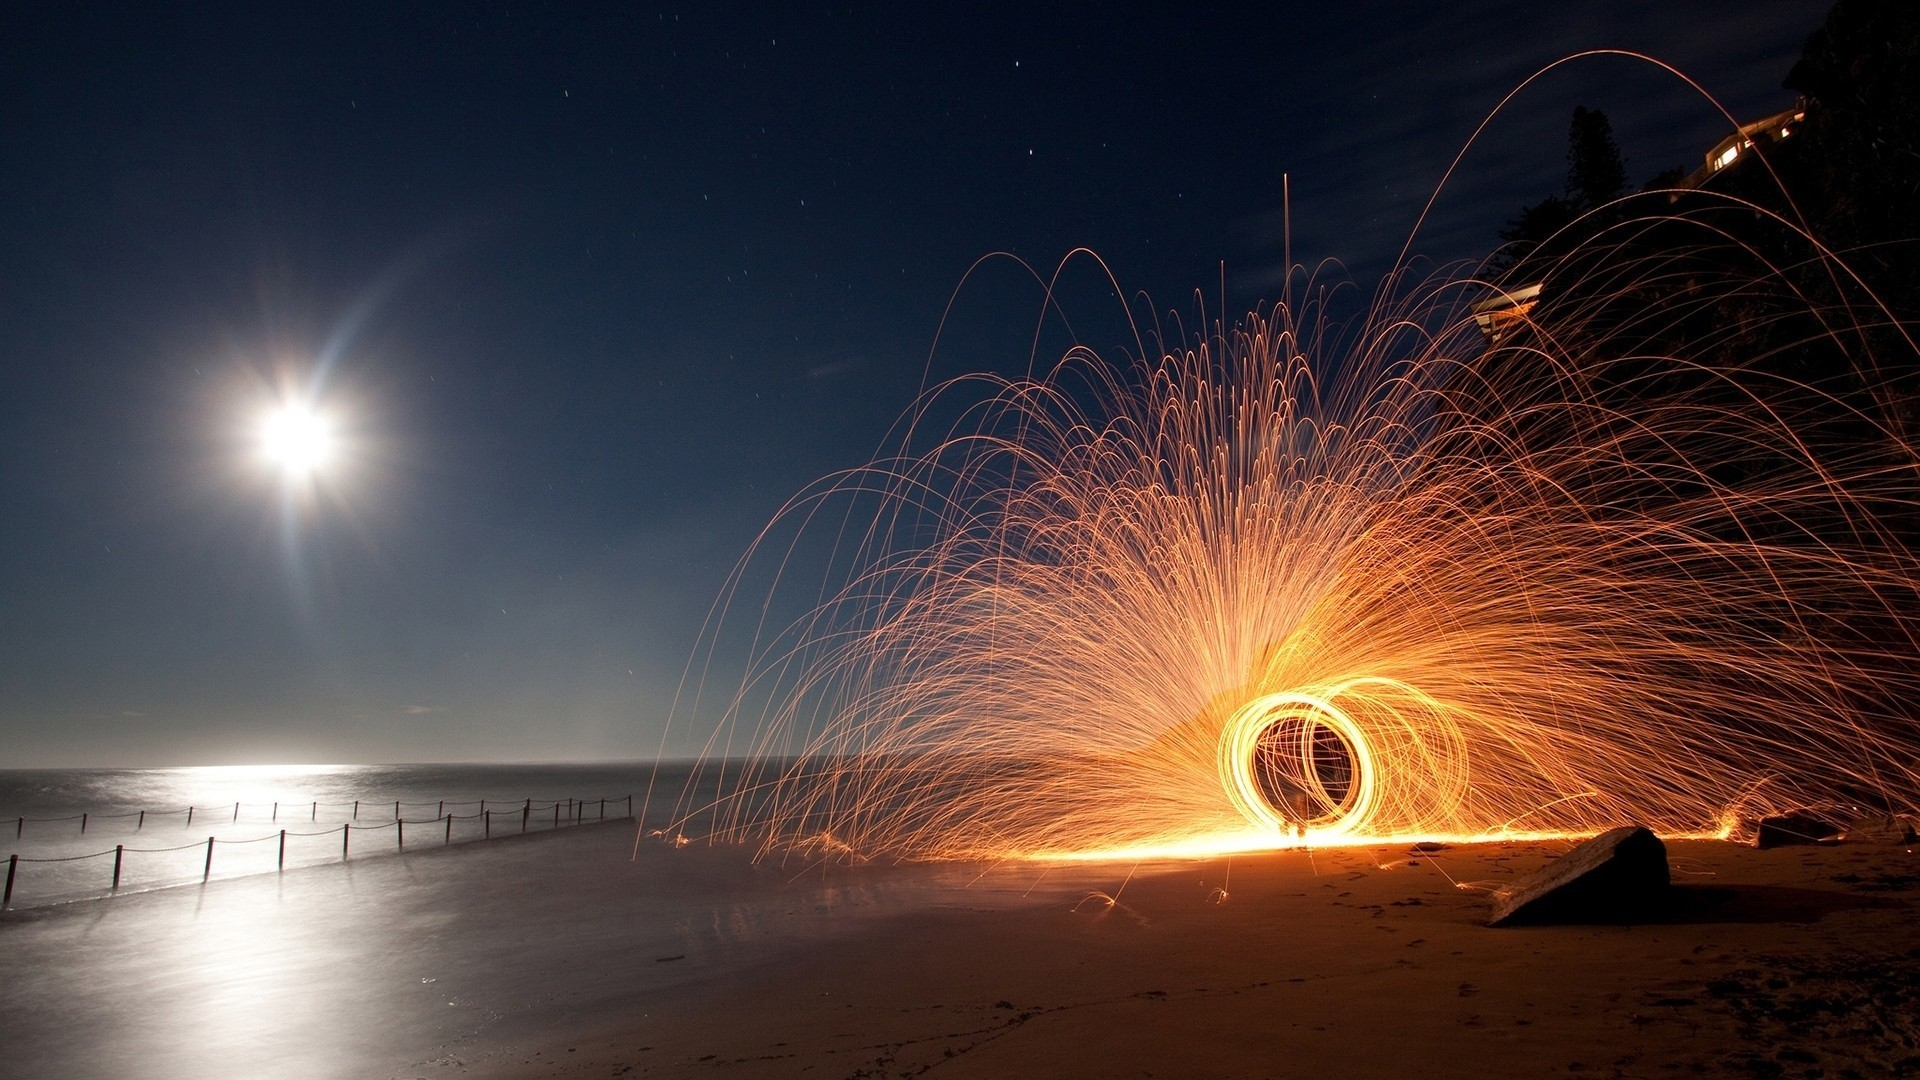 Circular sparkler on a beach at night wallpaper 1920x1080